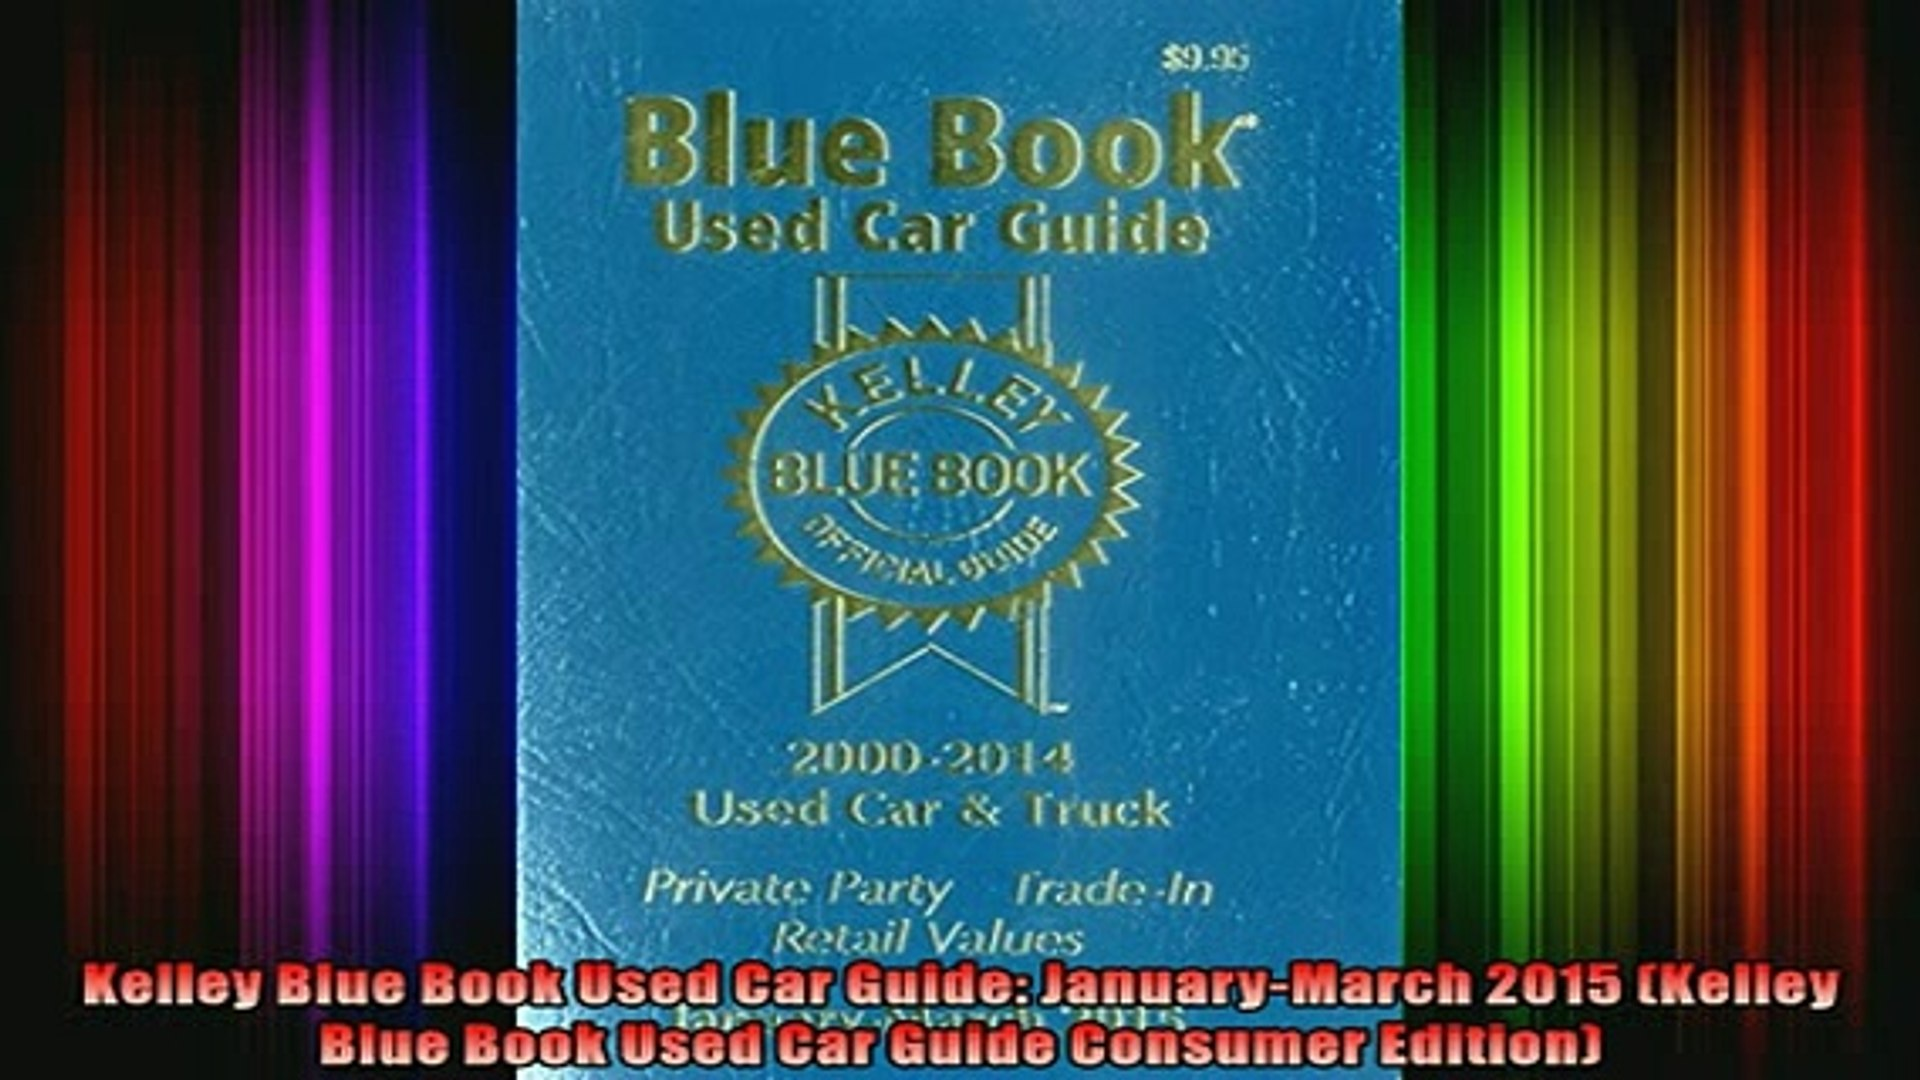 Read Book Kelley Blue Book Used Car Guide Januarymarch 2015 Kelley Blue Book Used Car Guide Online Free Video Dailymotion